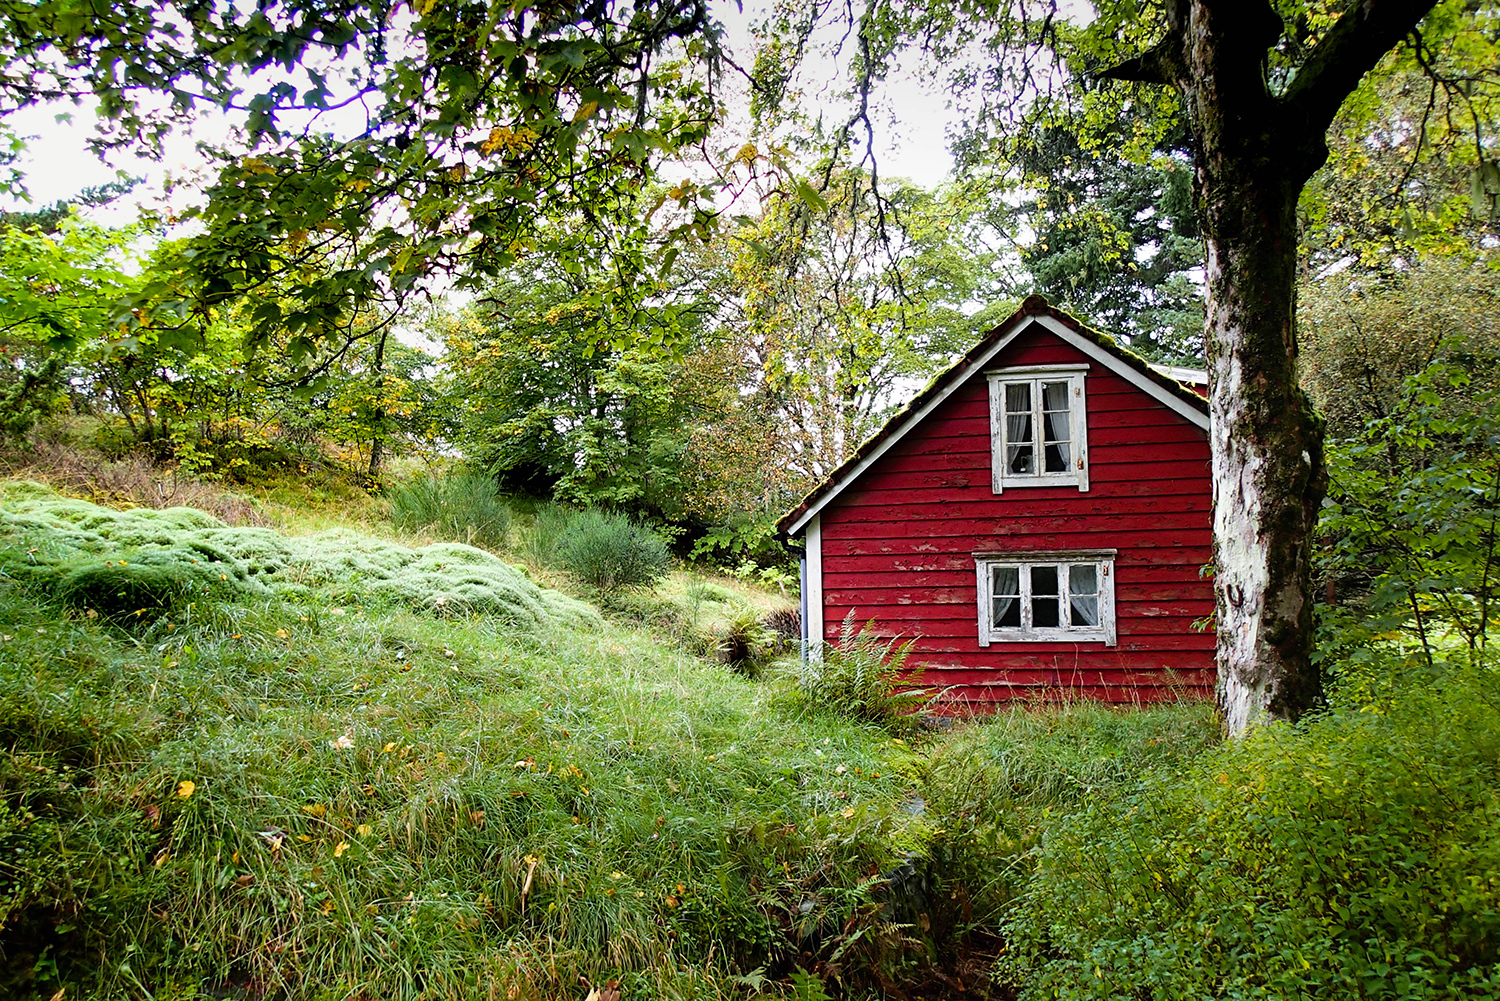 <p>A quiet (abandoned?) cabin in the forests of Askøy, an island off Norway's coast near Bergen.</p>